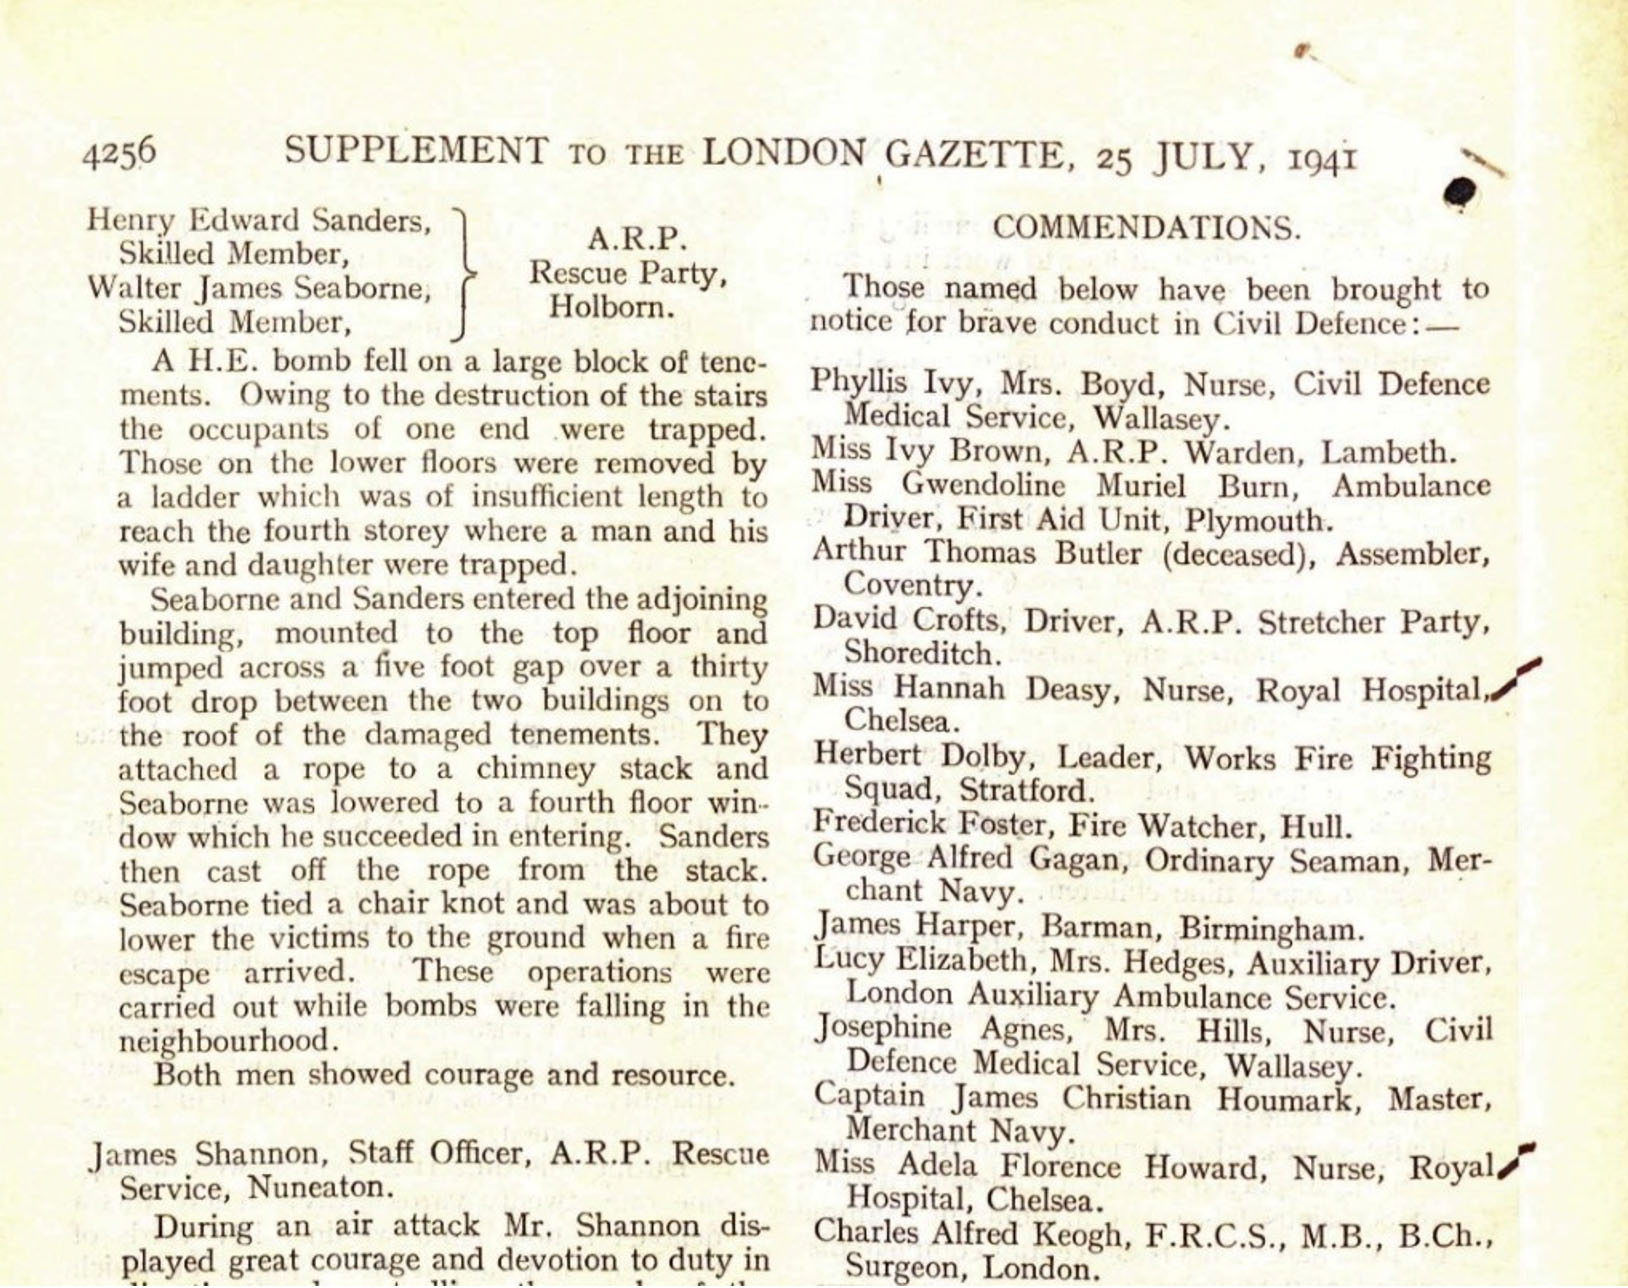 Commendations for Gallantry in The London Gazette, 25 July 1941